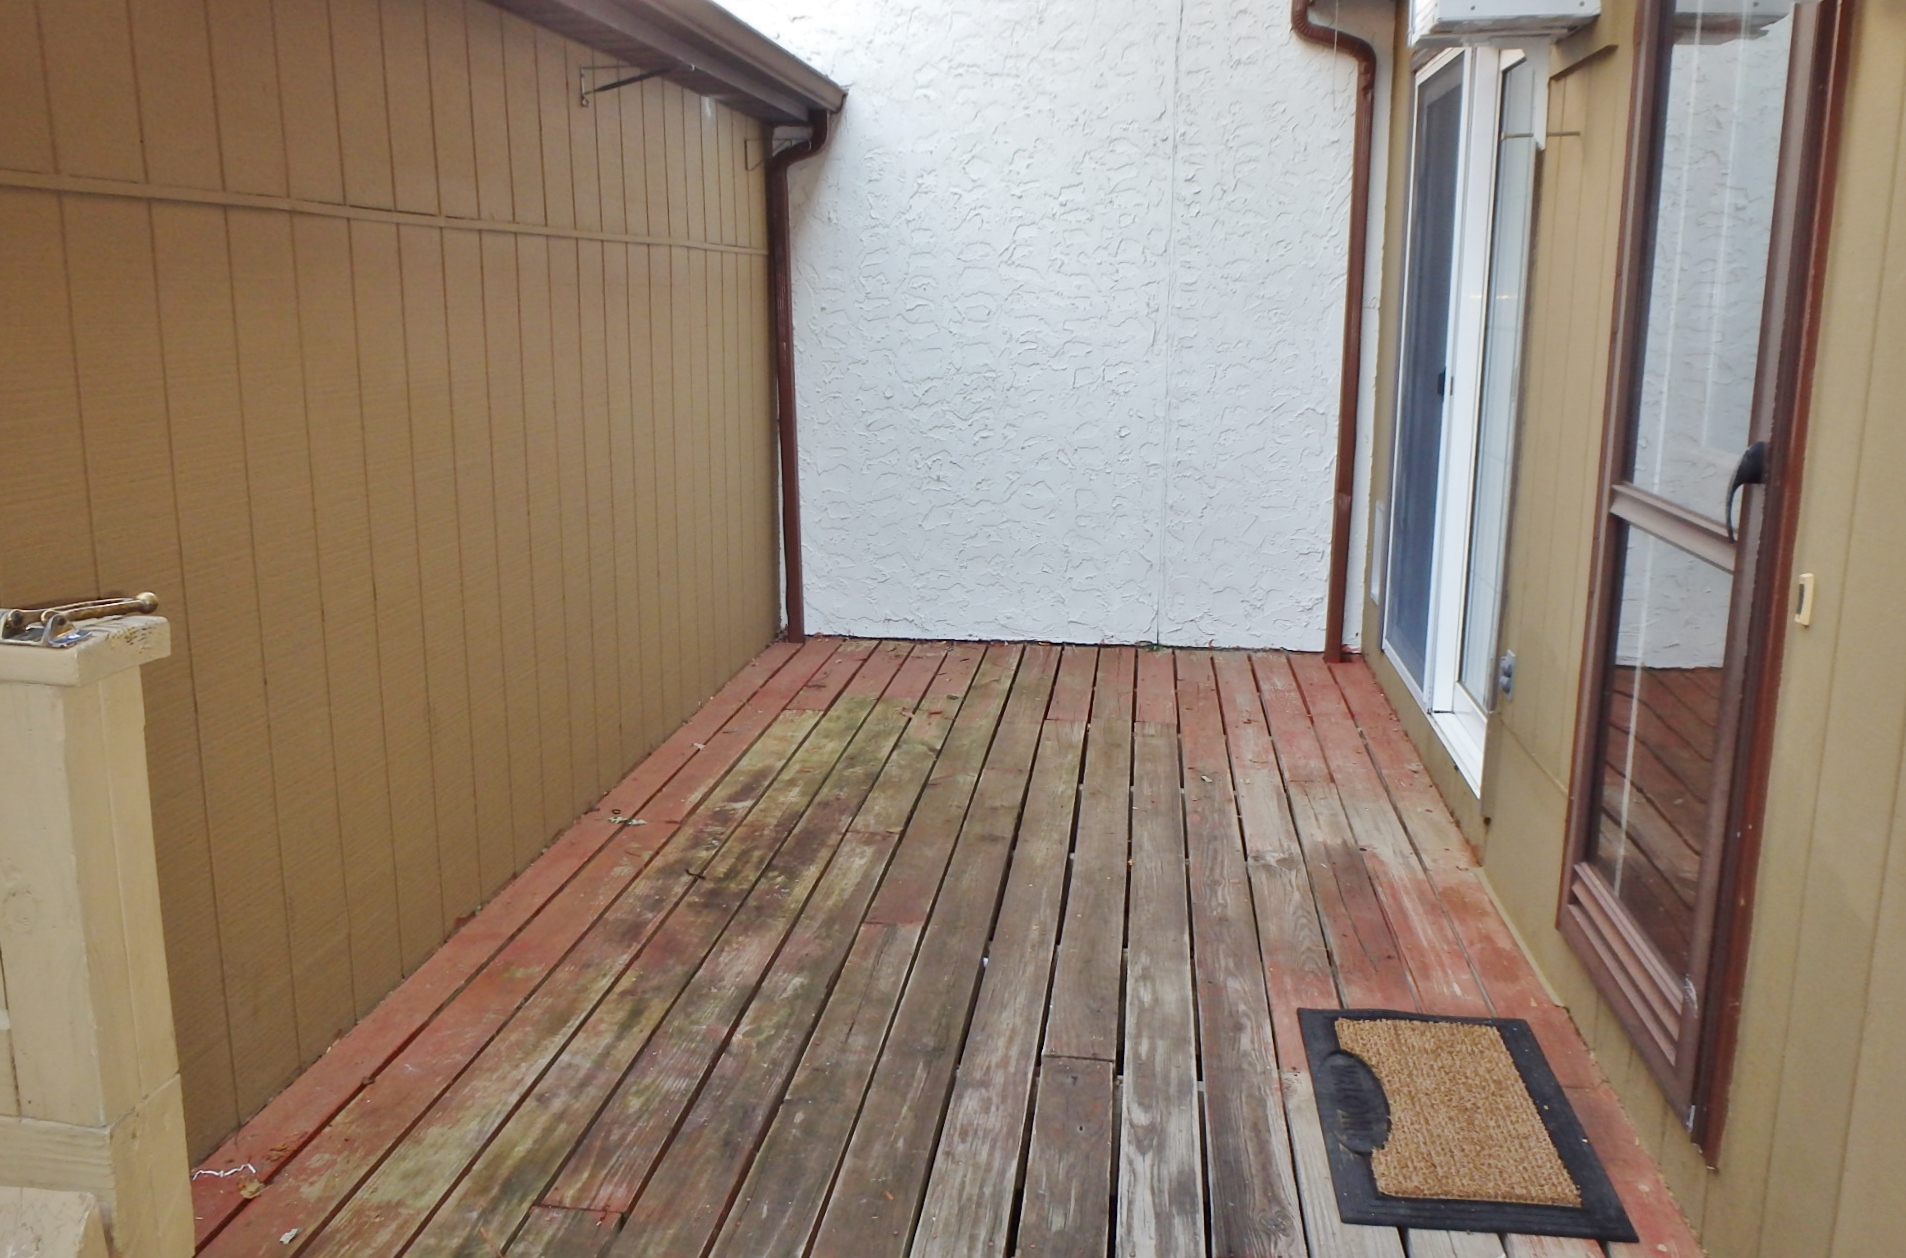 Deck photo at 862 W. Aaron Drive.